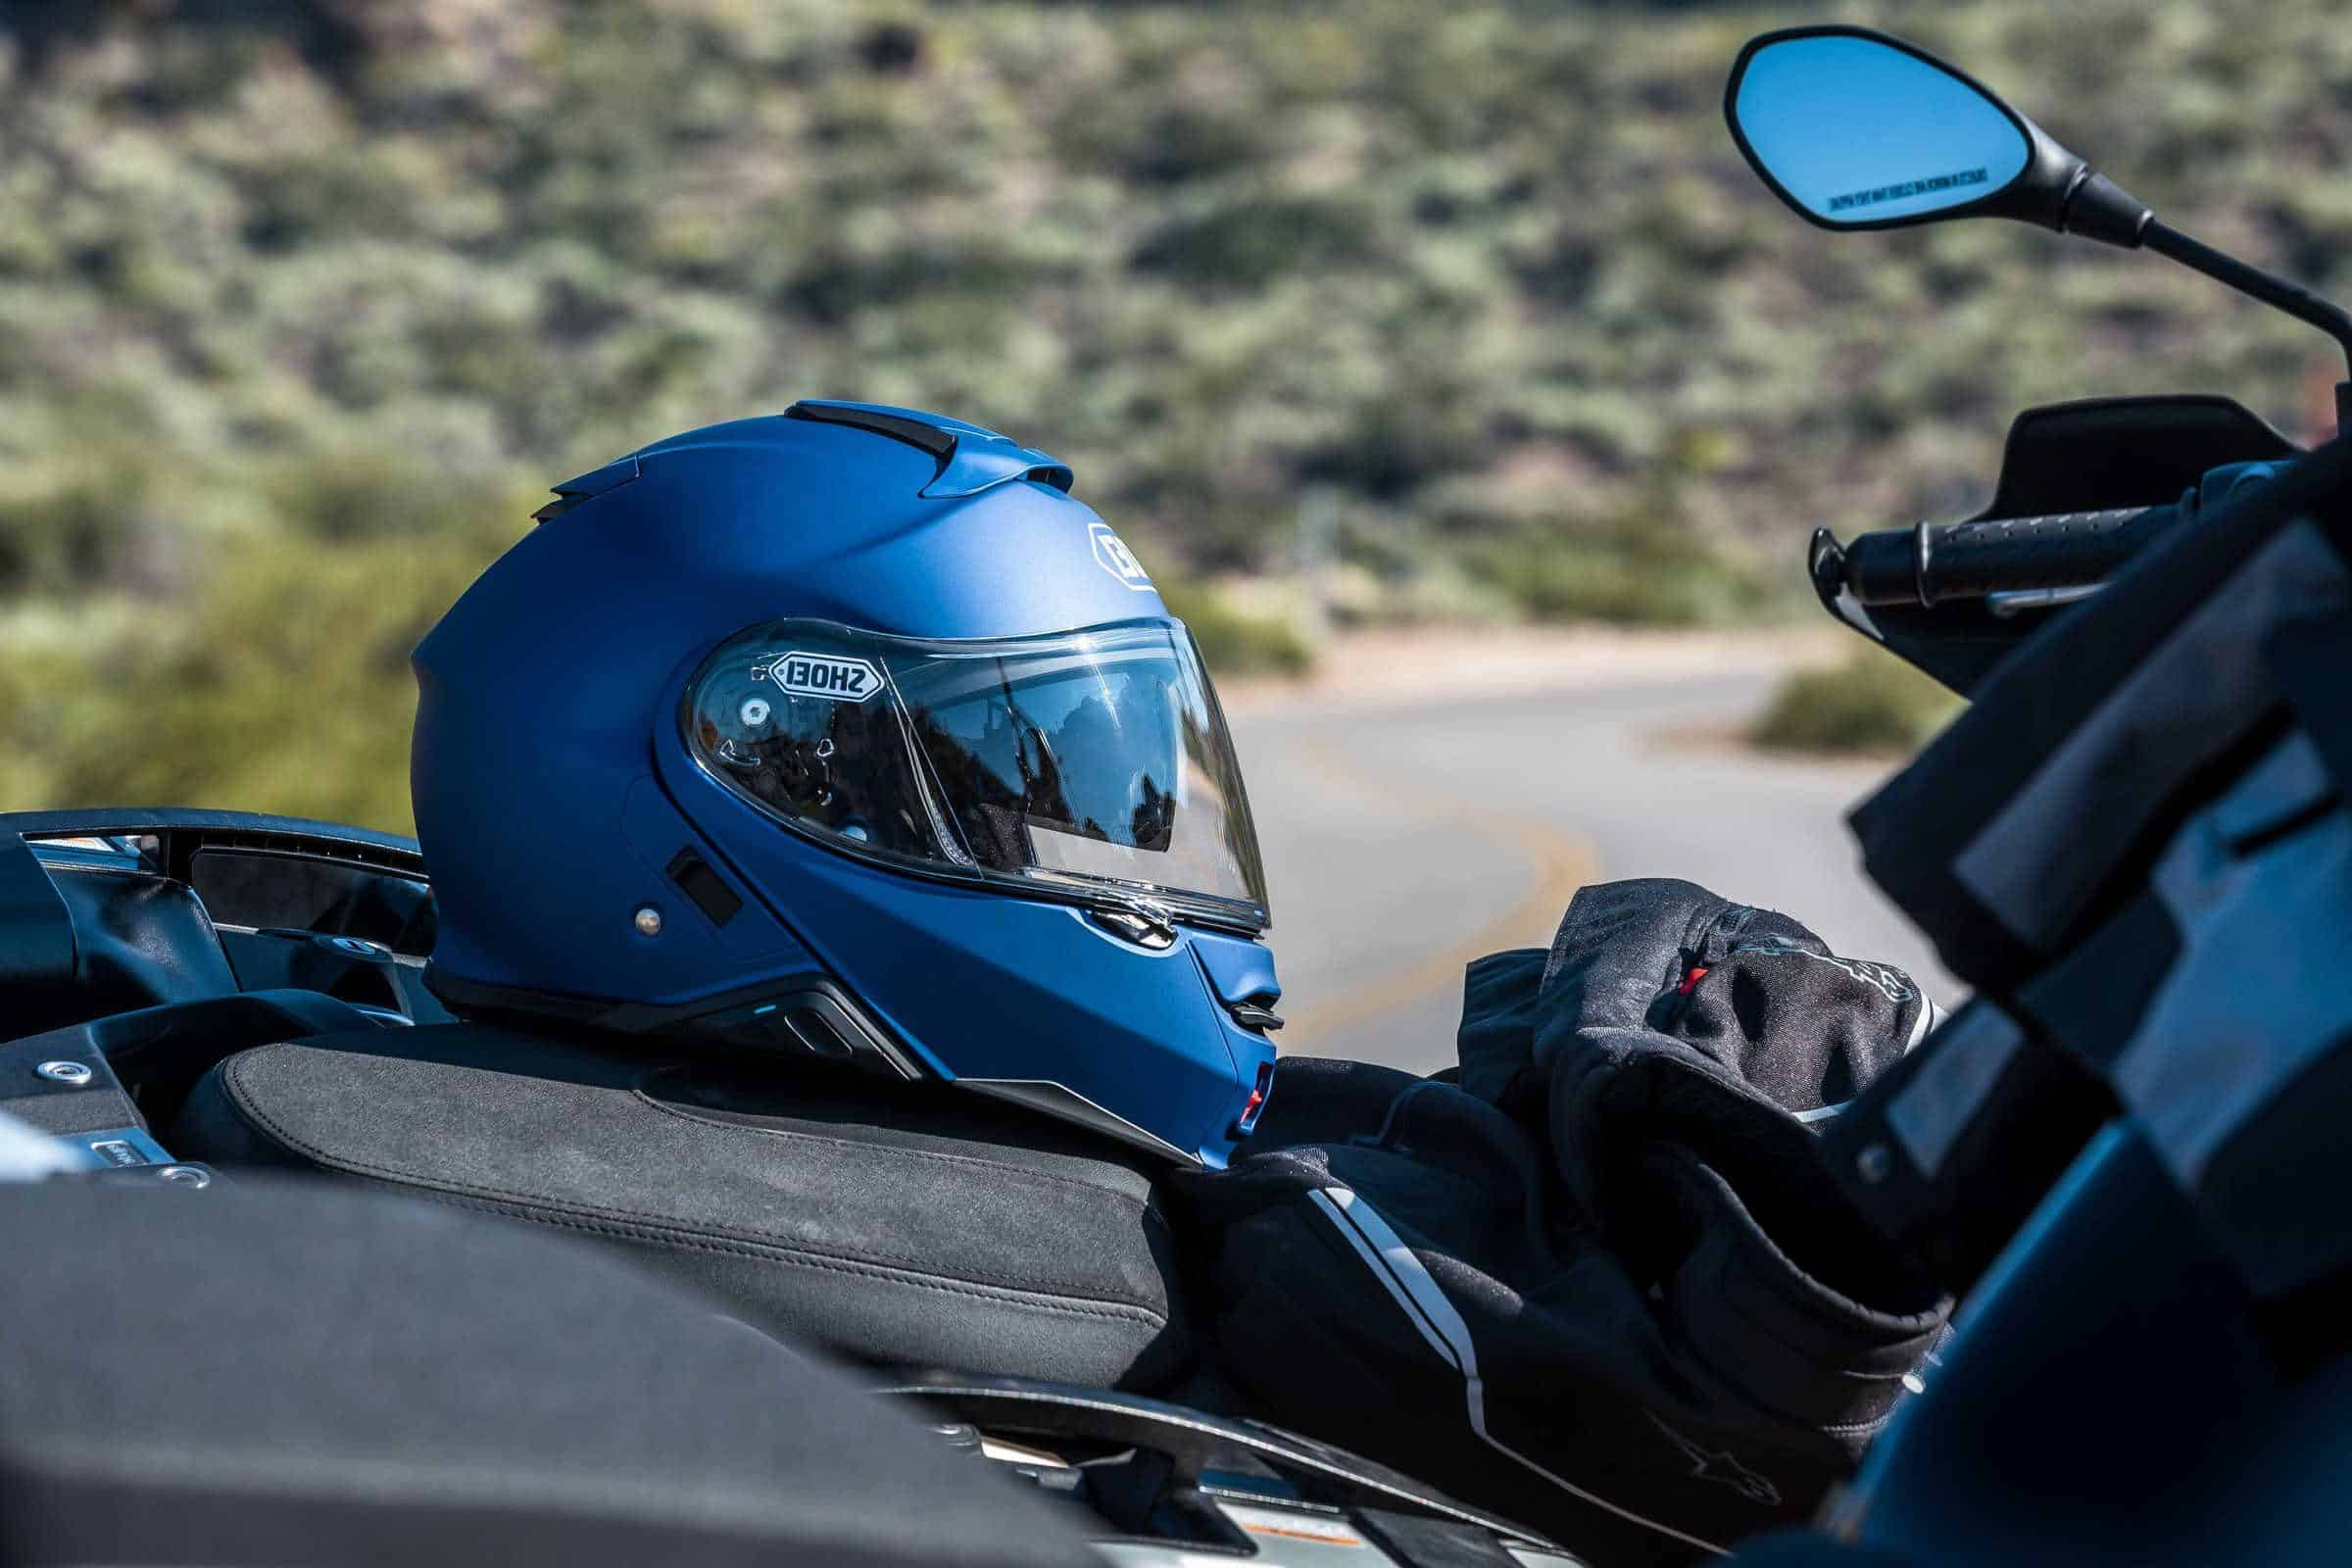 How to lock your helmet to your motorcycle.